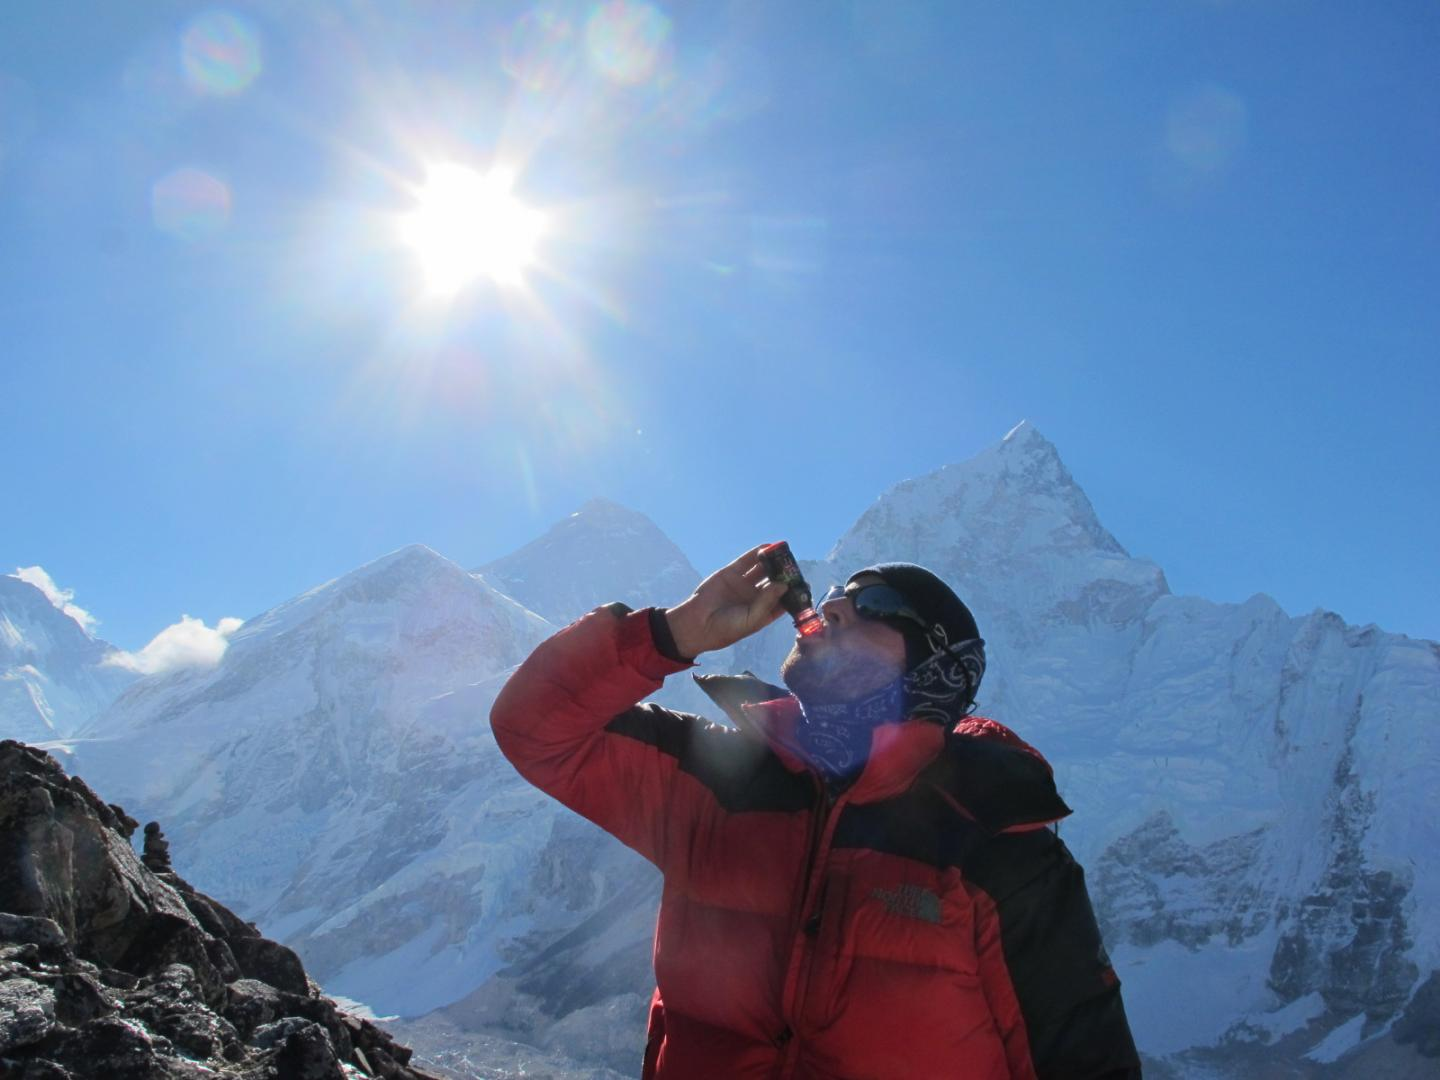 Drinking beet juice can help the human body cope with high altitudes. Here, a study subject drinks beet juice with Mt. Everest in the background. Credit: Harald Engan, Mid Sweden University